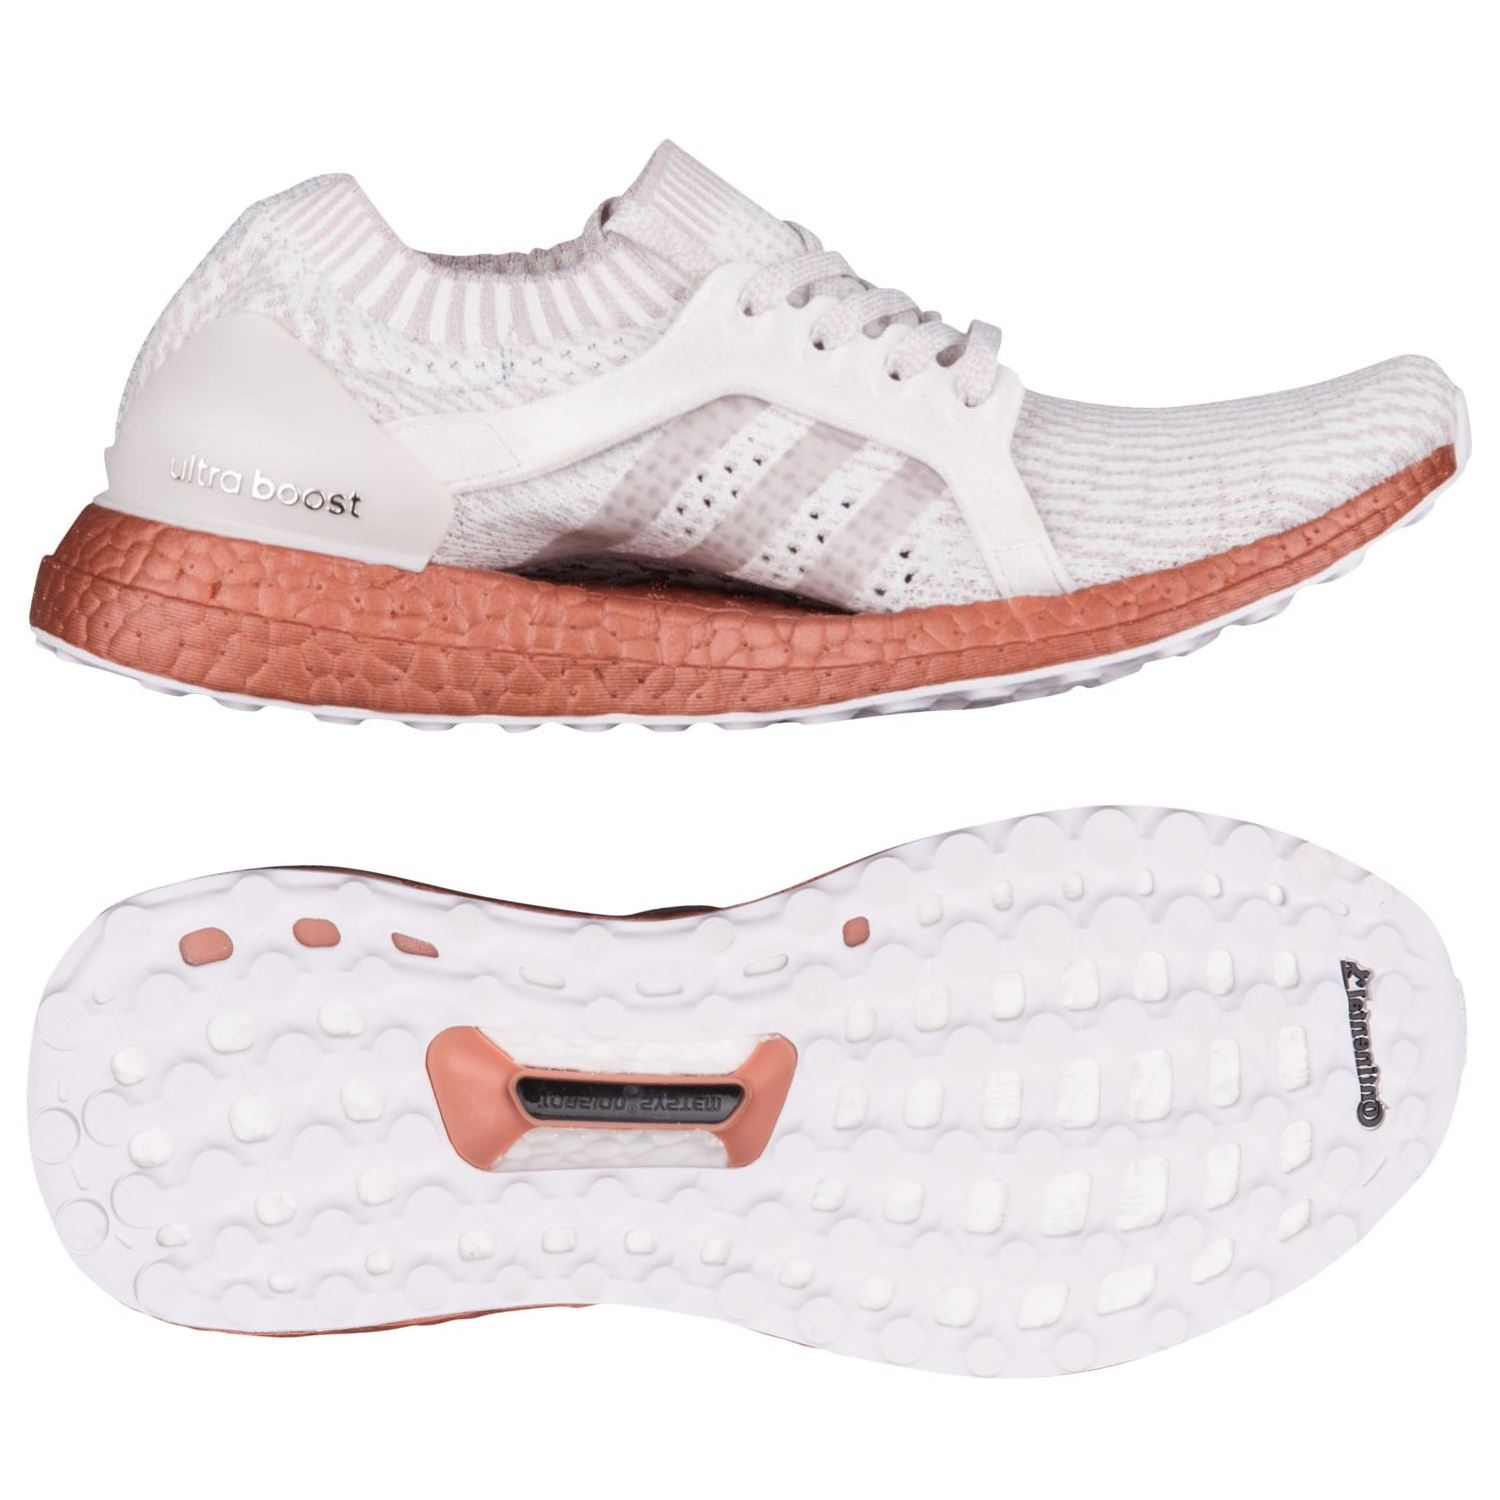 beda3bea039c9 adidas ULTRA BOOST X LIMITED EDITION WHITE WOMEN S GIRLS TRAINERS GYM COMFY  NEW